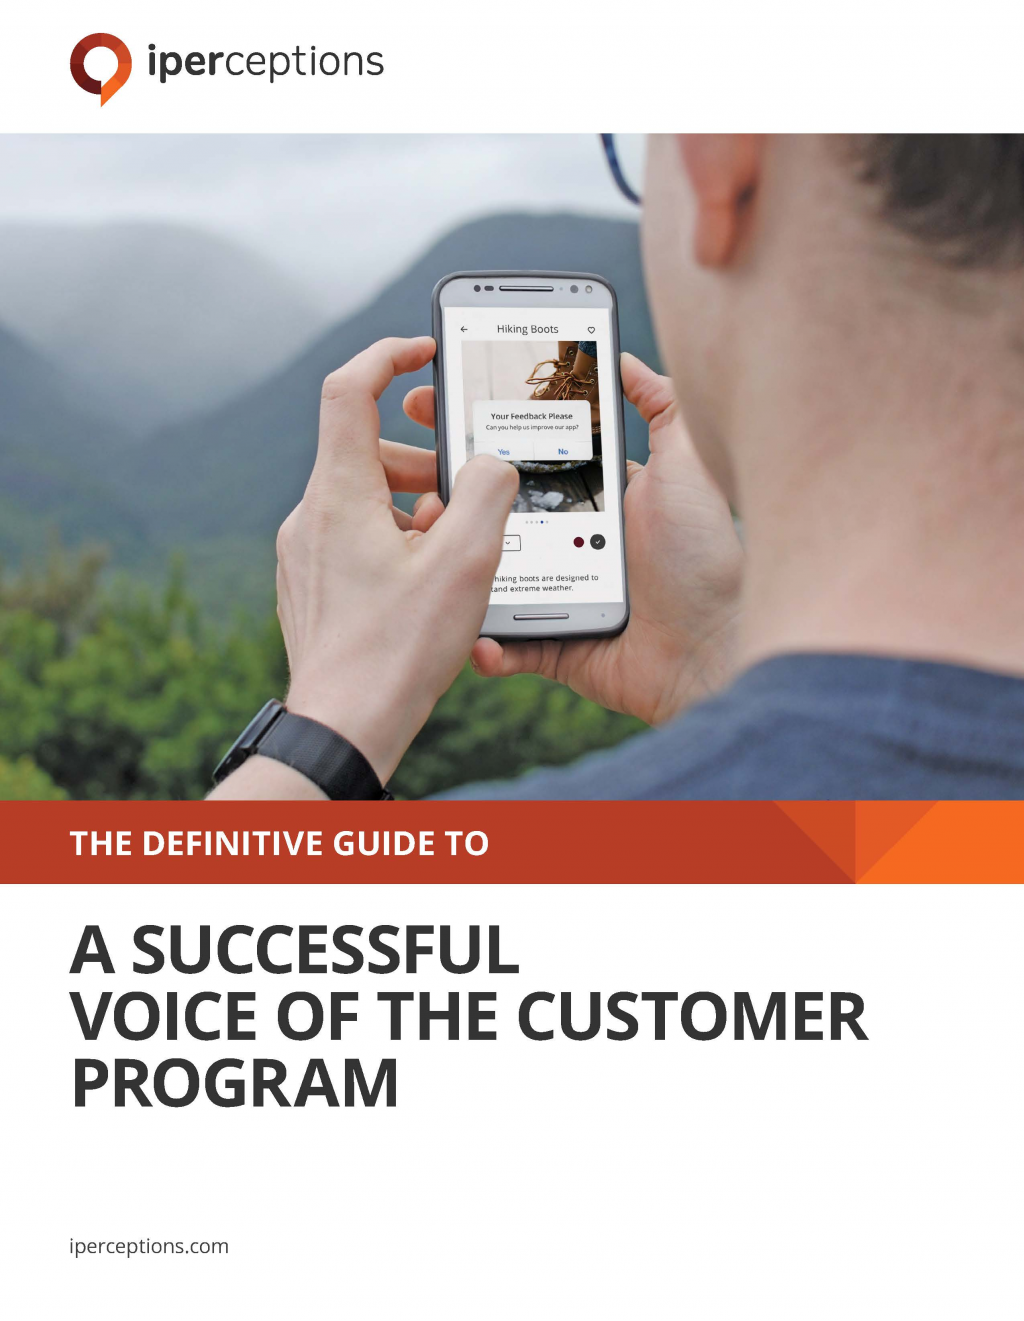 View the report - The Definitive Guide to: A Successful Voice of the Customer Program